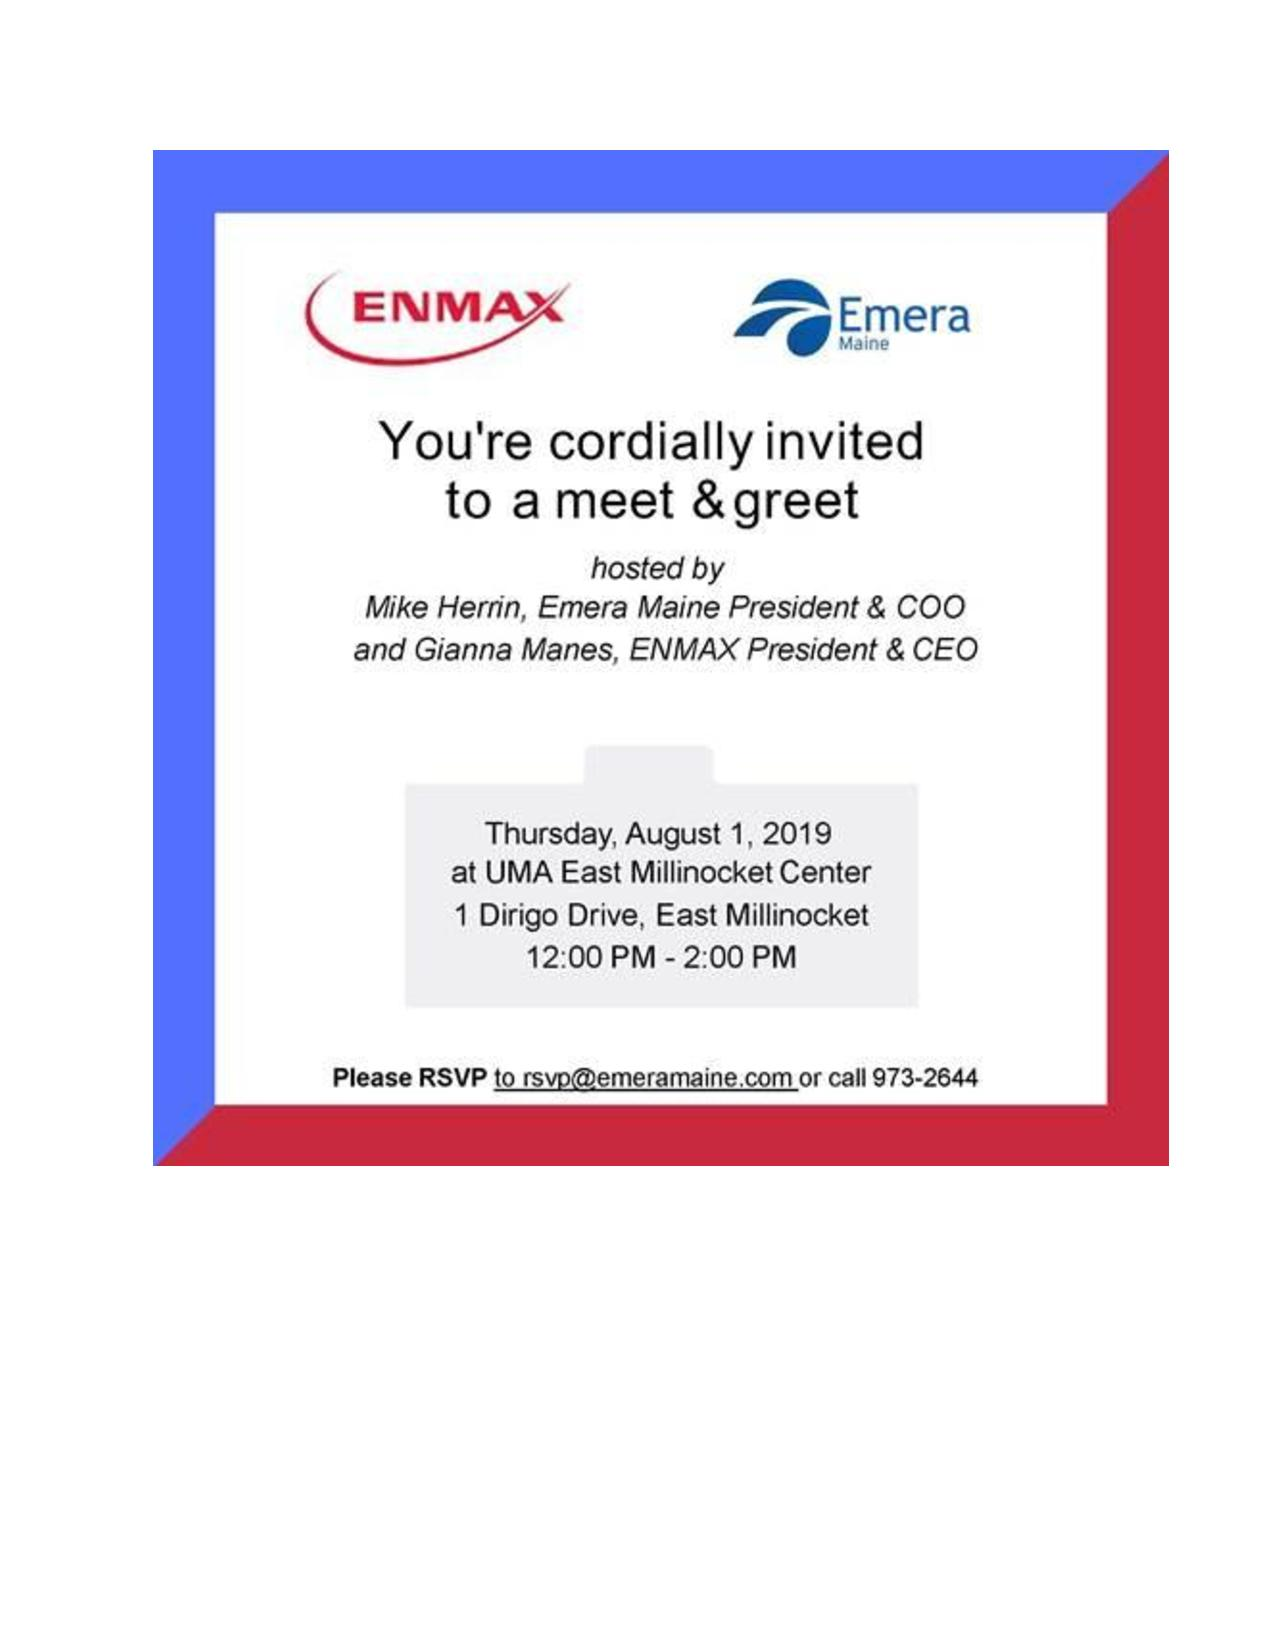 Meet and Greet with Emera Maine Thursday, August 1